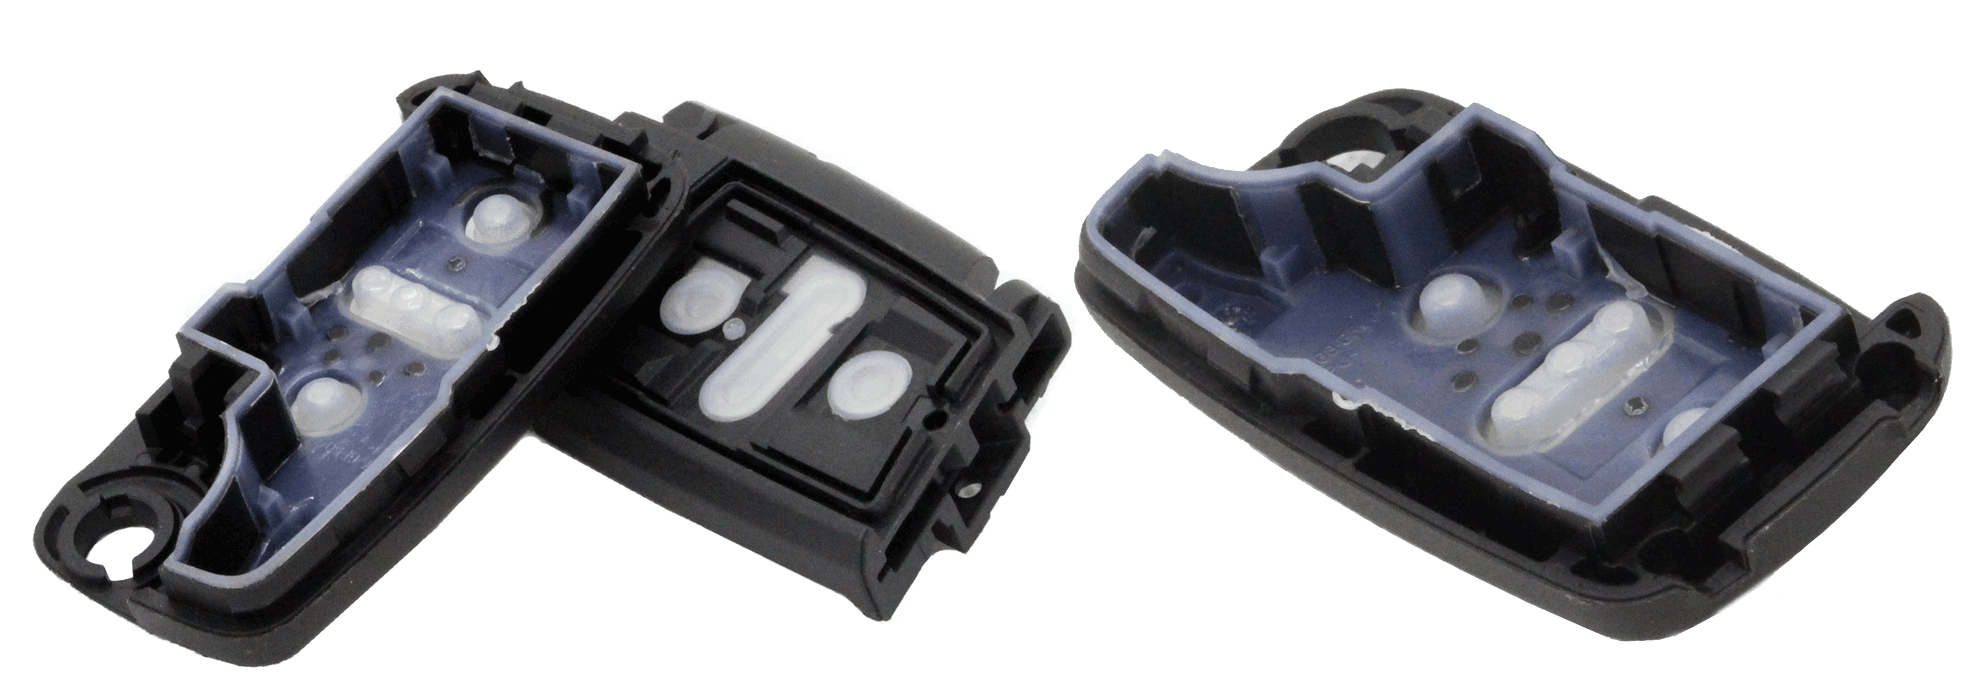 double injection automotive switch button TPU TPE waterproof